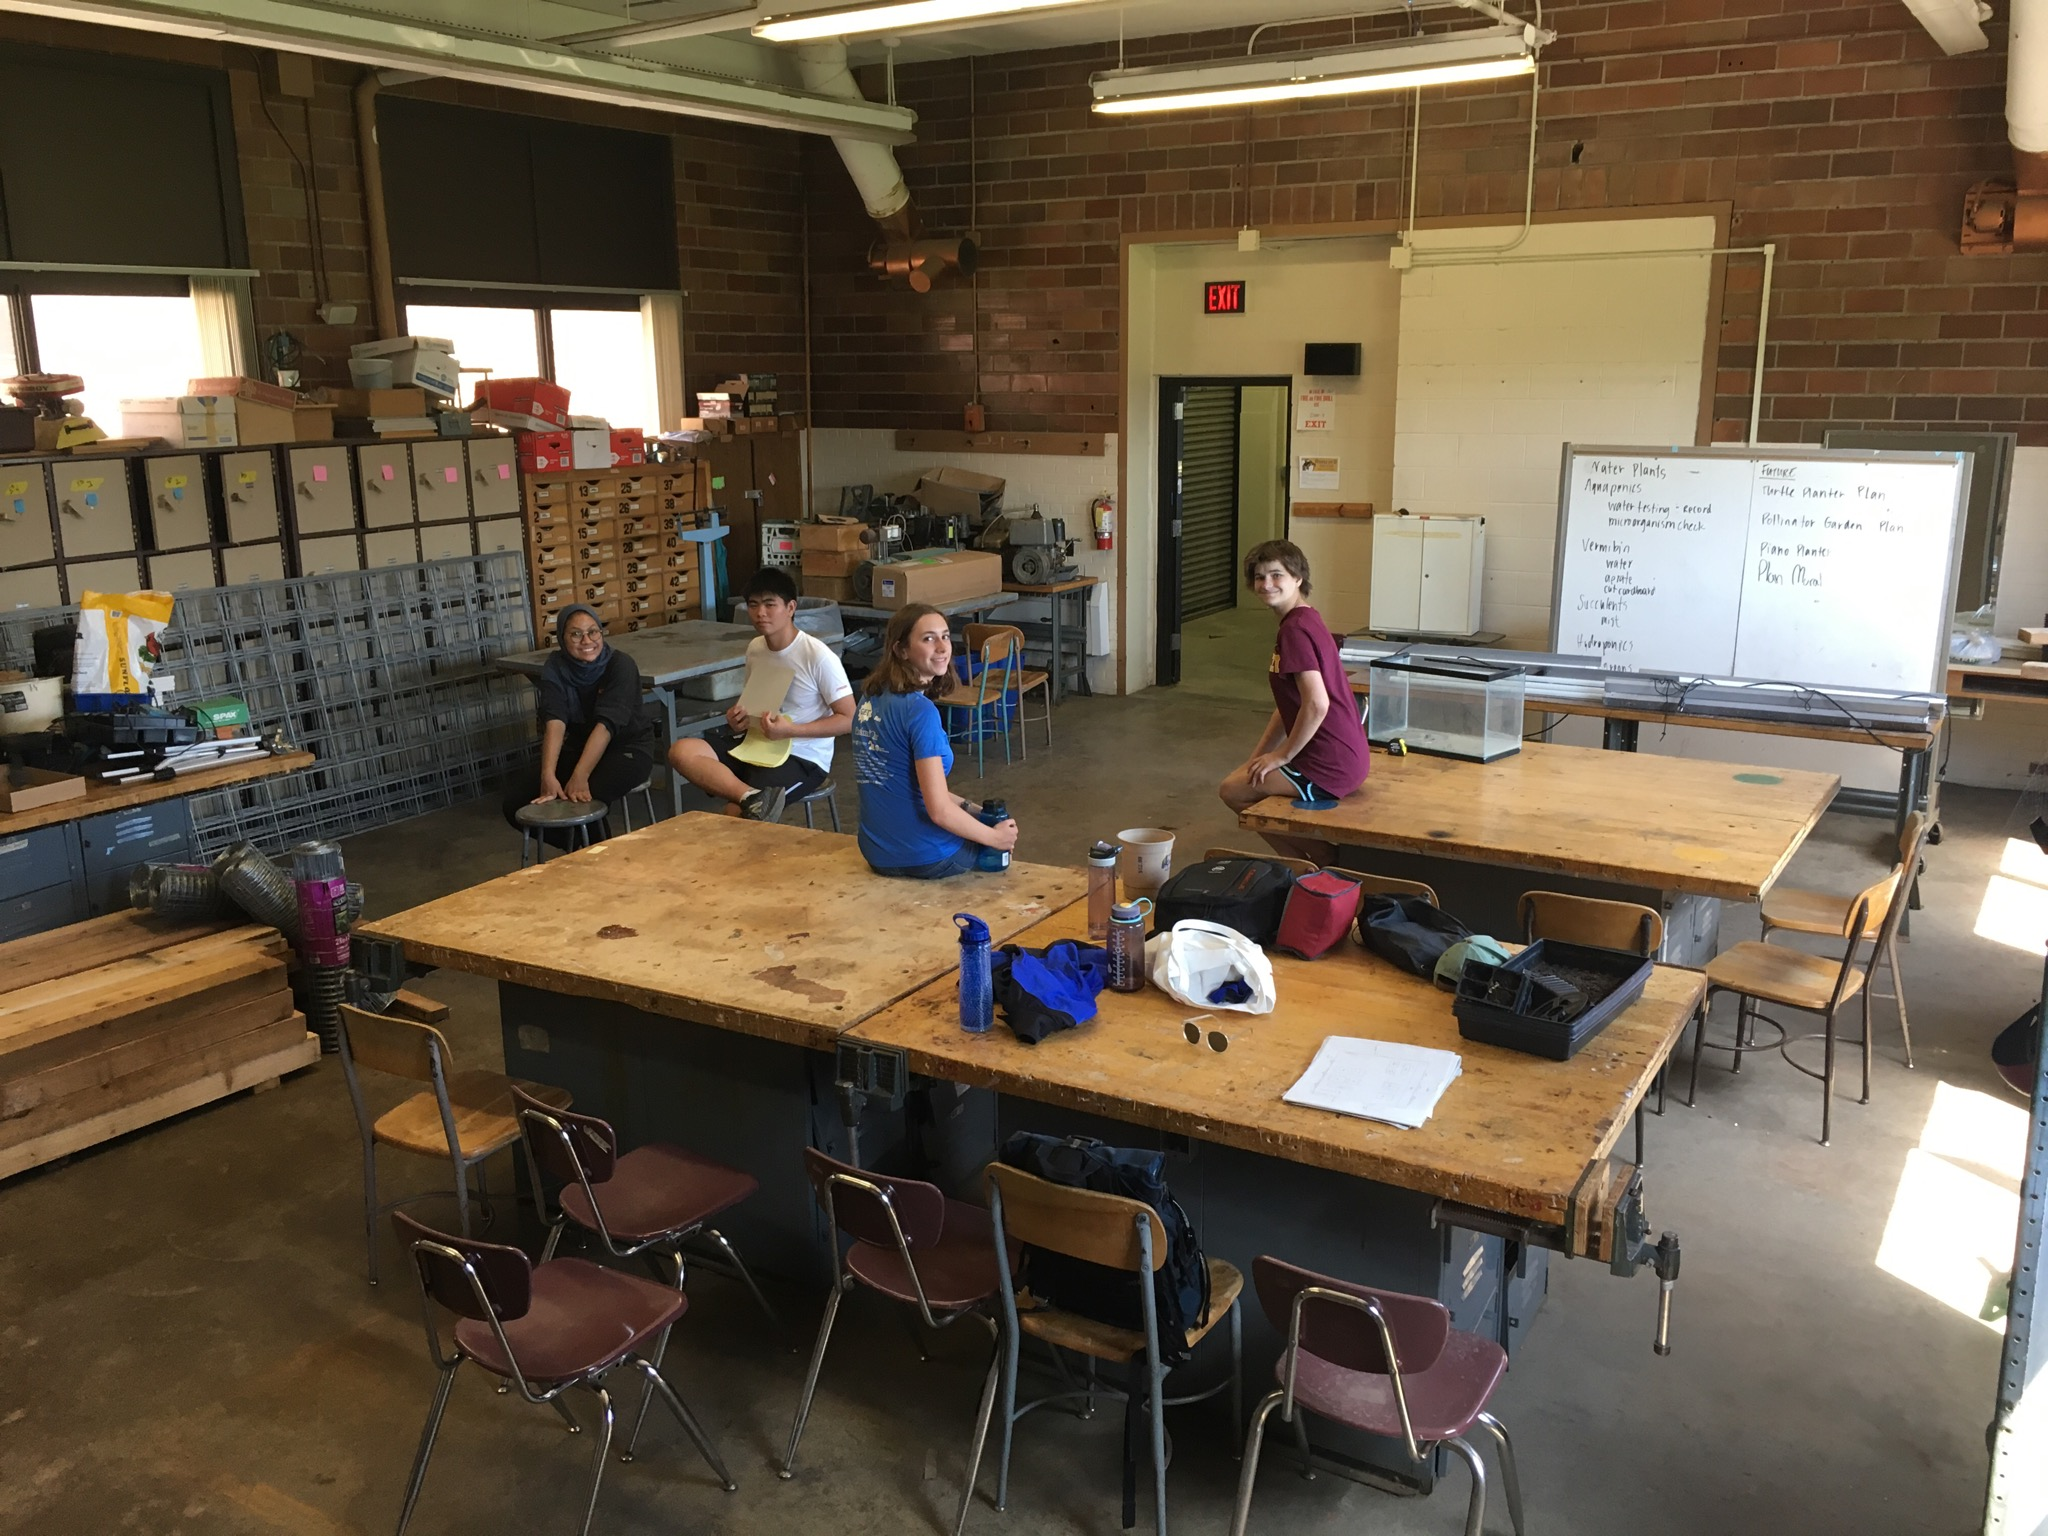 The classroom following interior design changes.